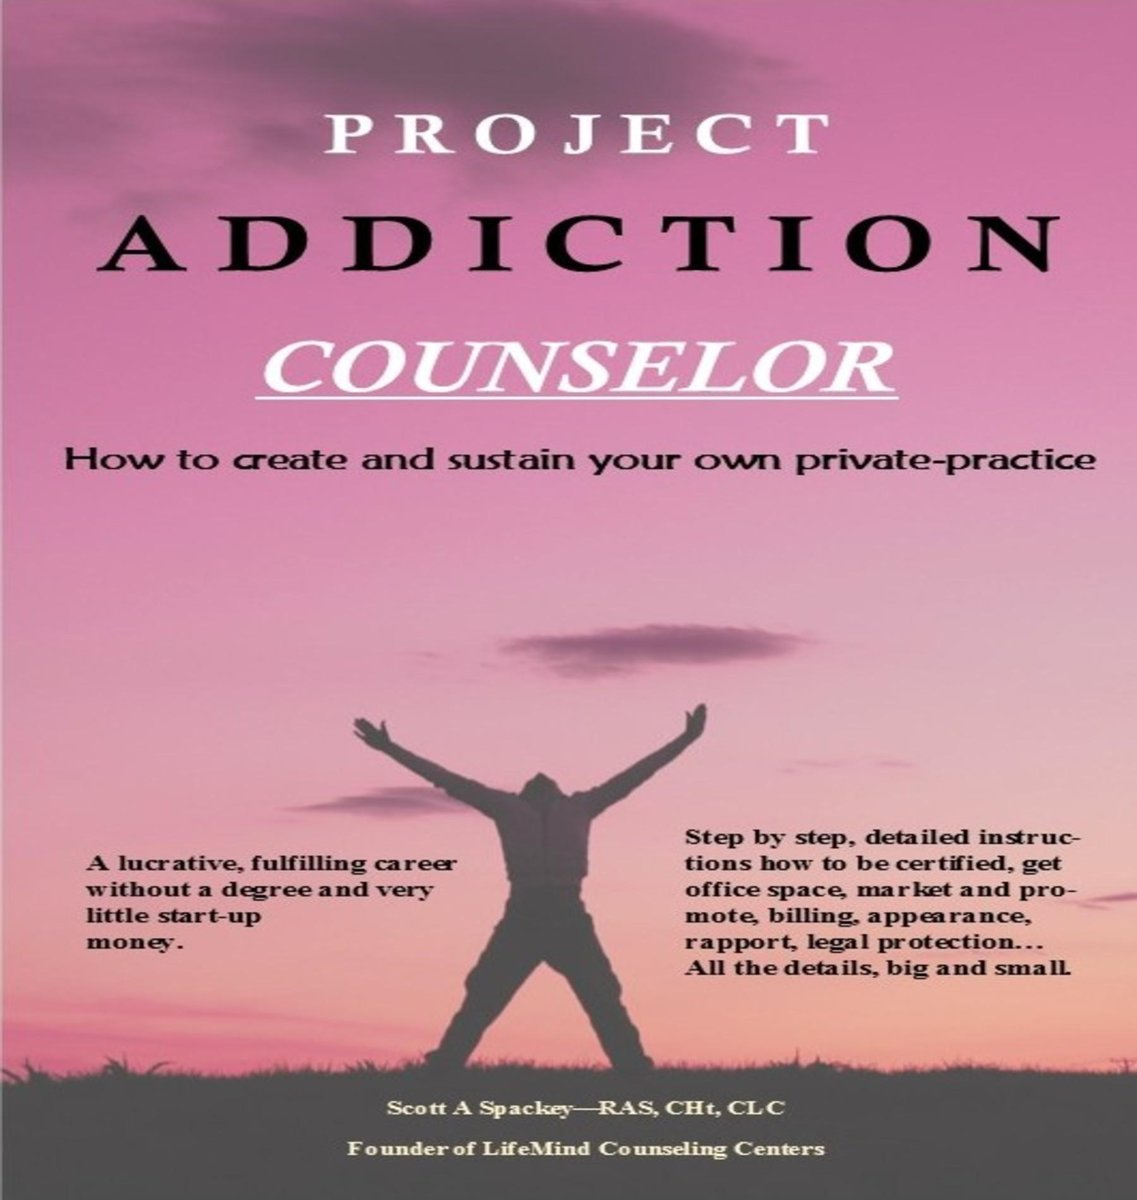 Project Addiction Counselor, How to Create and Sustain A Private Practice